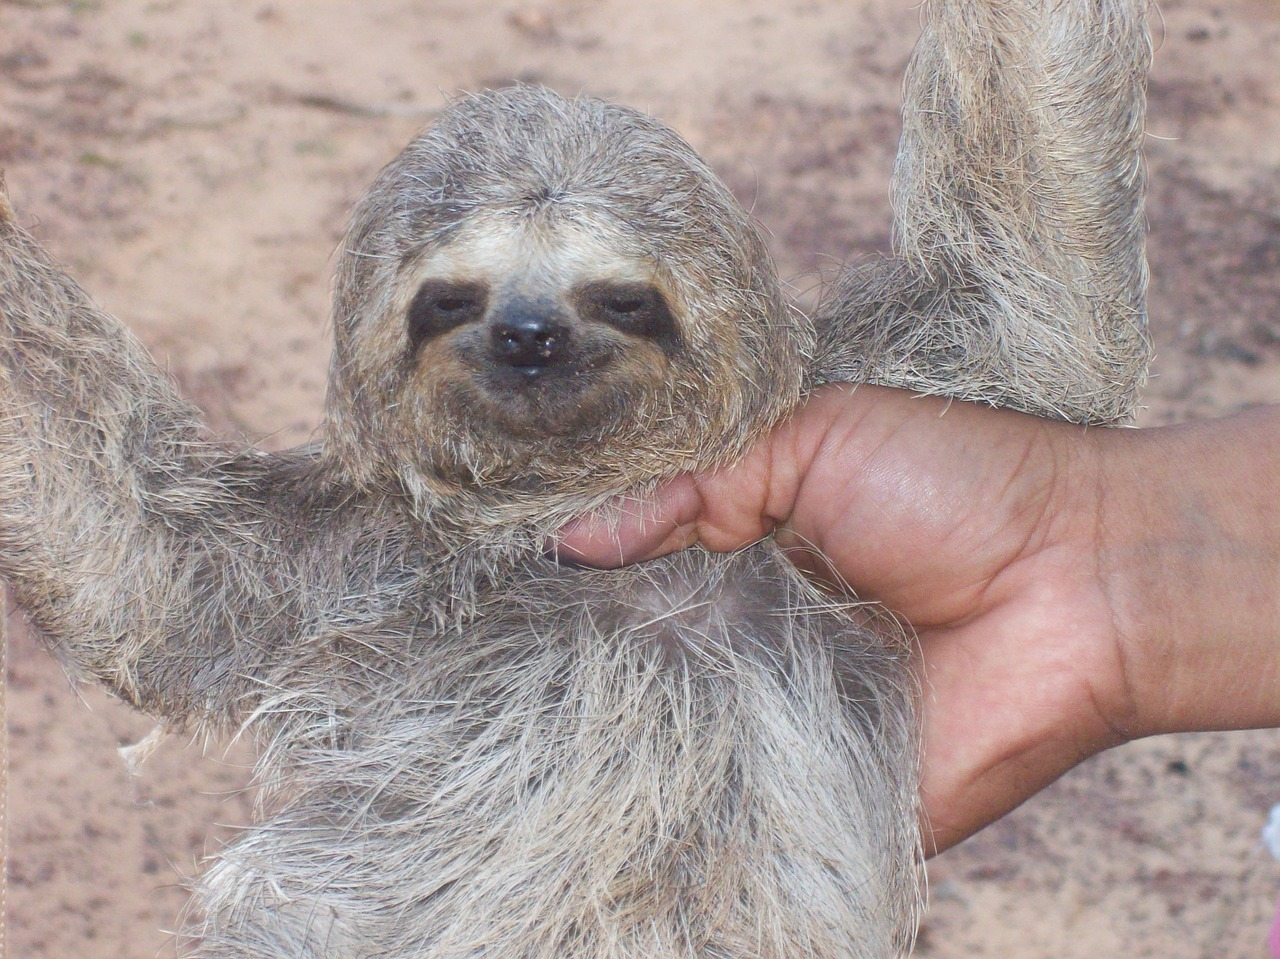 Funny Names For Sloths